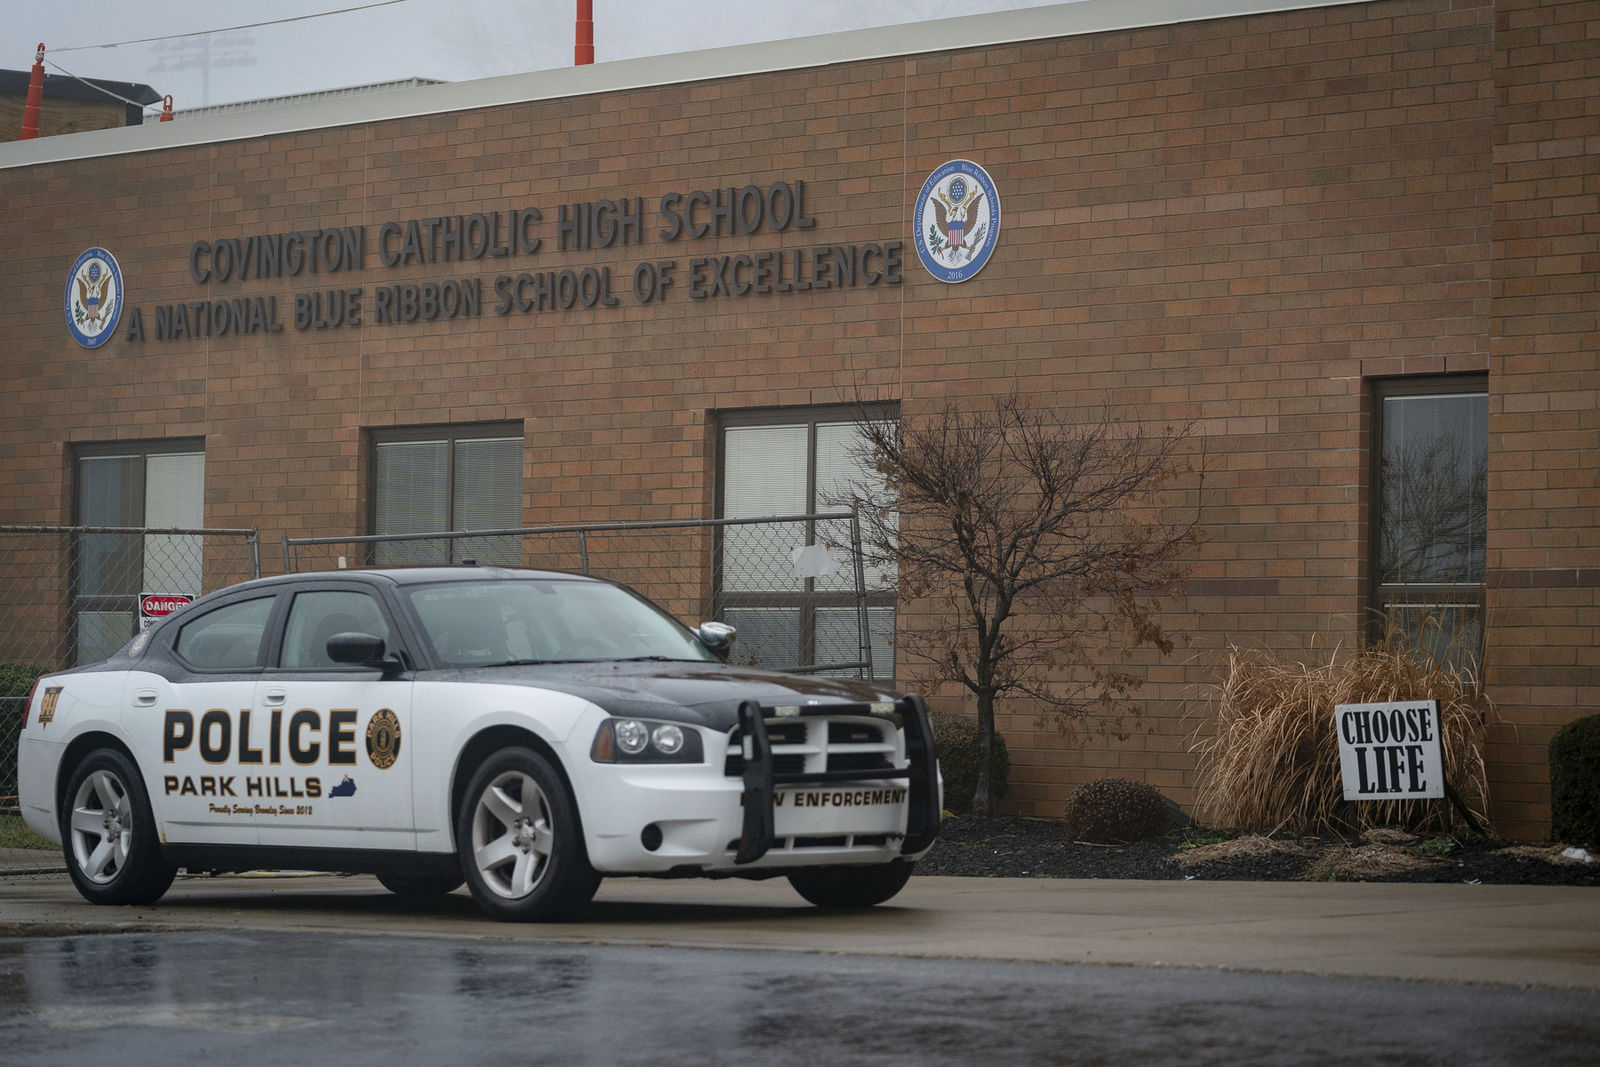 A police car sits in front of Covington Catholic High School in Park Hills, Ky., Saturday, Jan 19, 2019. (AP Photo/Bryan Woolston)